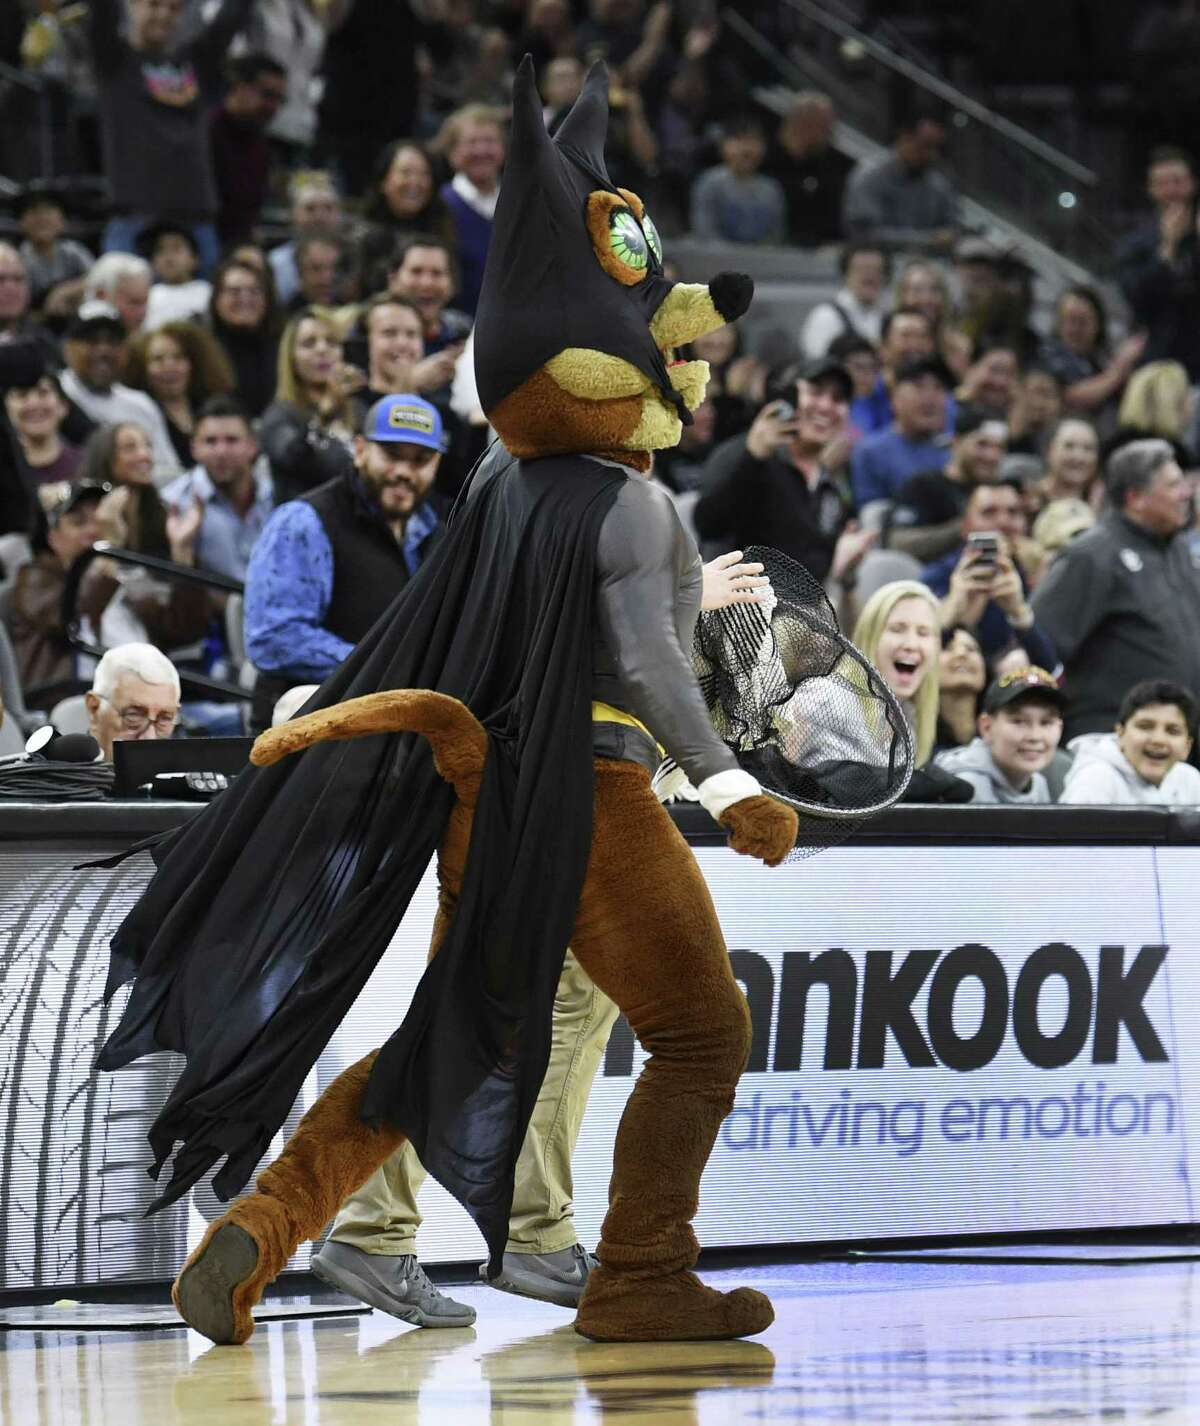 The Spurs Coyote and an assistant walk off the court with a bat that they caught during NBA action in the AT&T Center on Saturday, Feb. 2, 2019. The flying mammals have taken up residence in the arena.